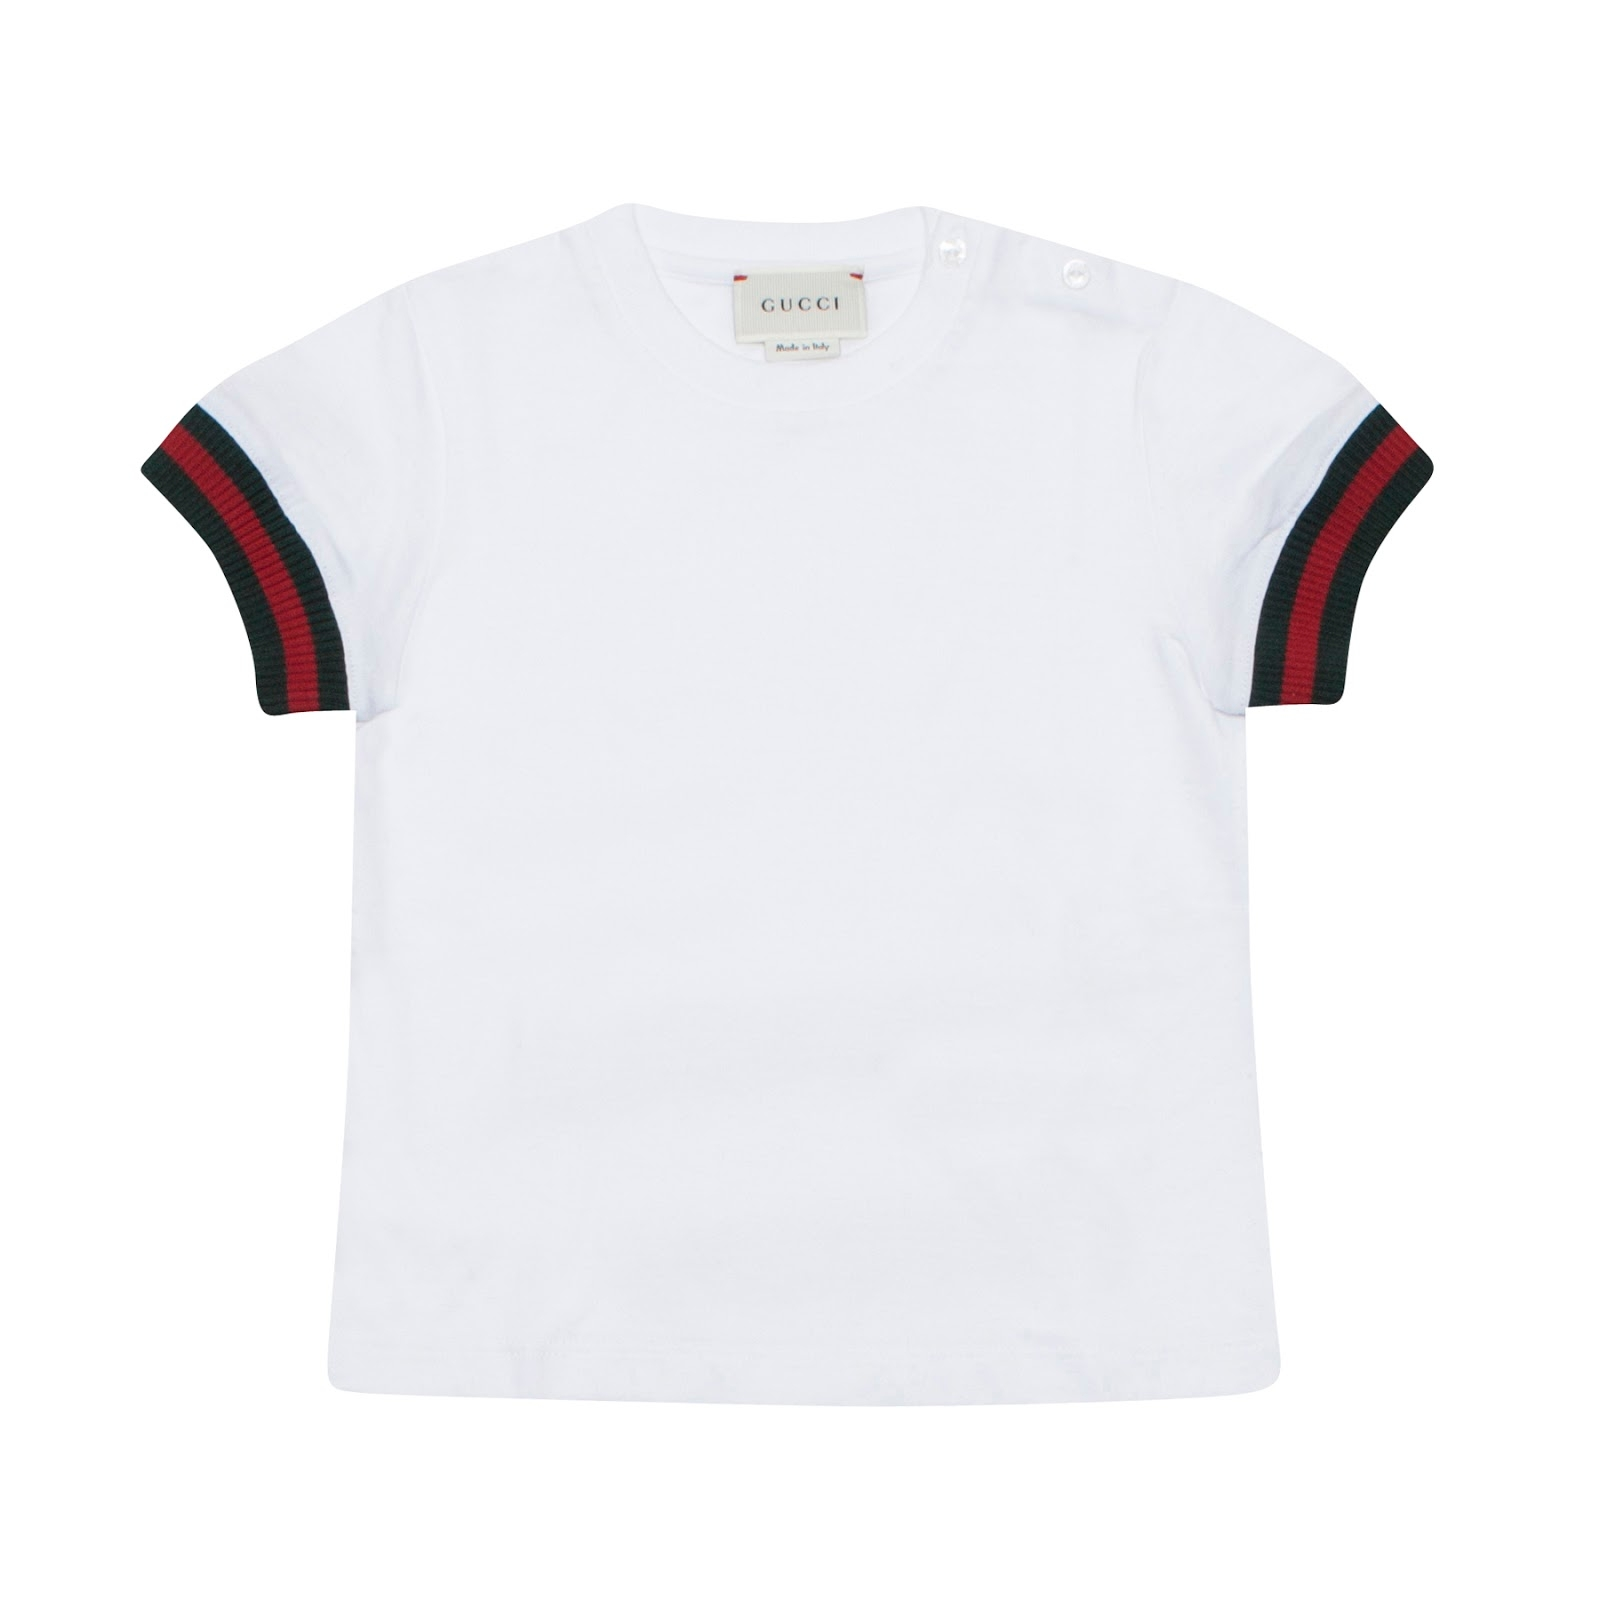 21194f40b180 Gucci - Kids - Harvey Nichols